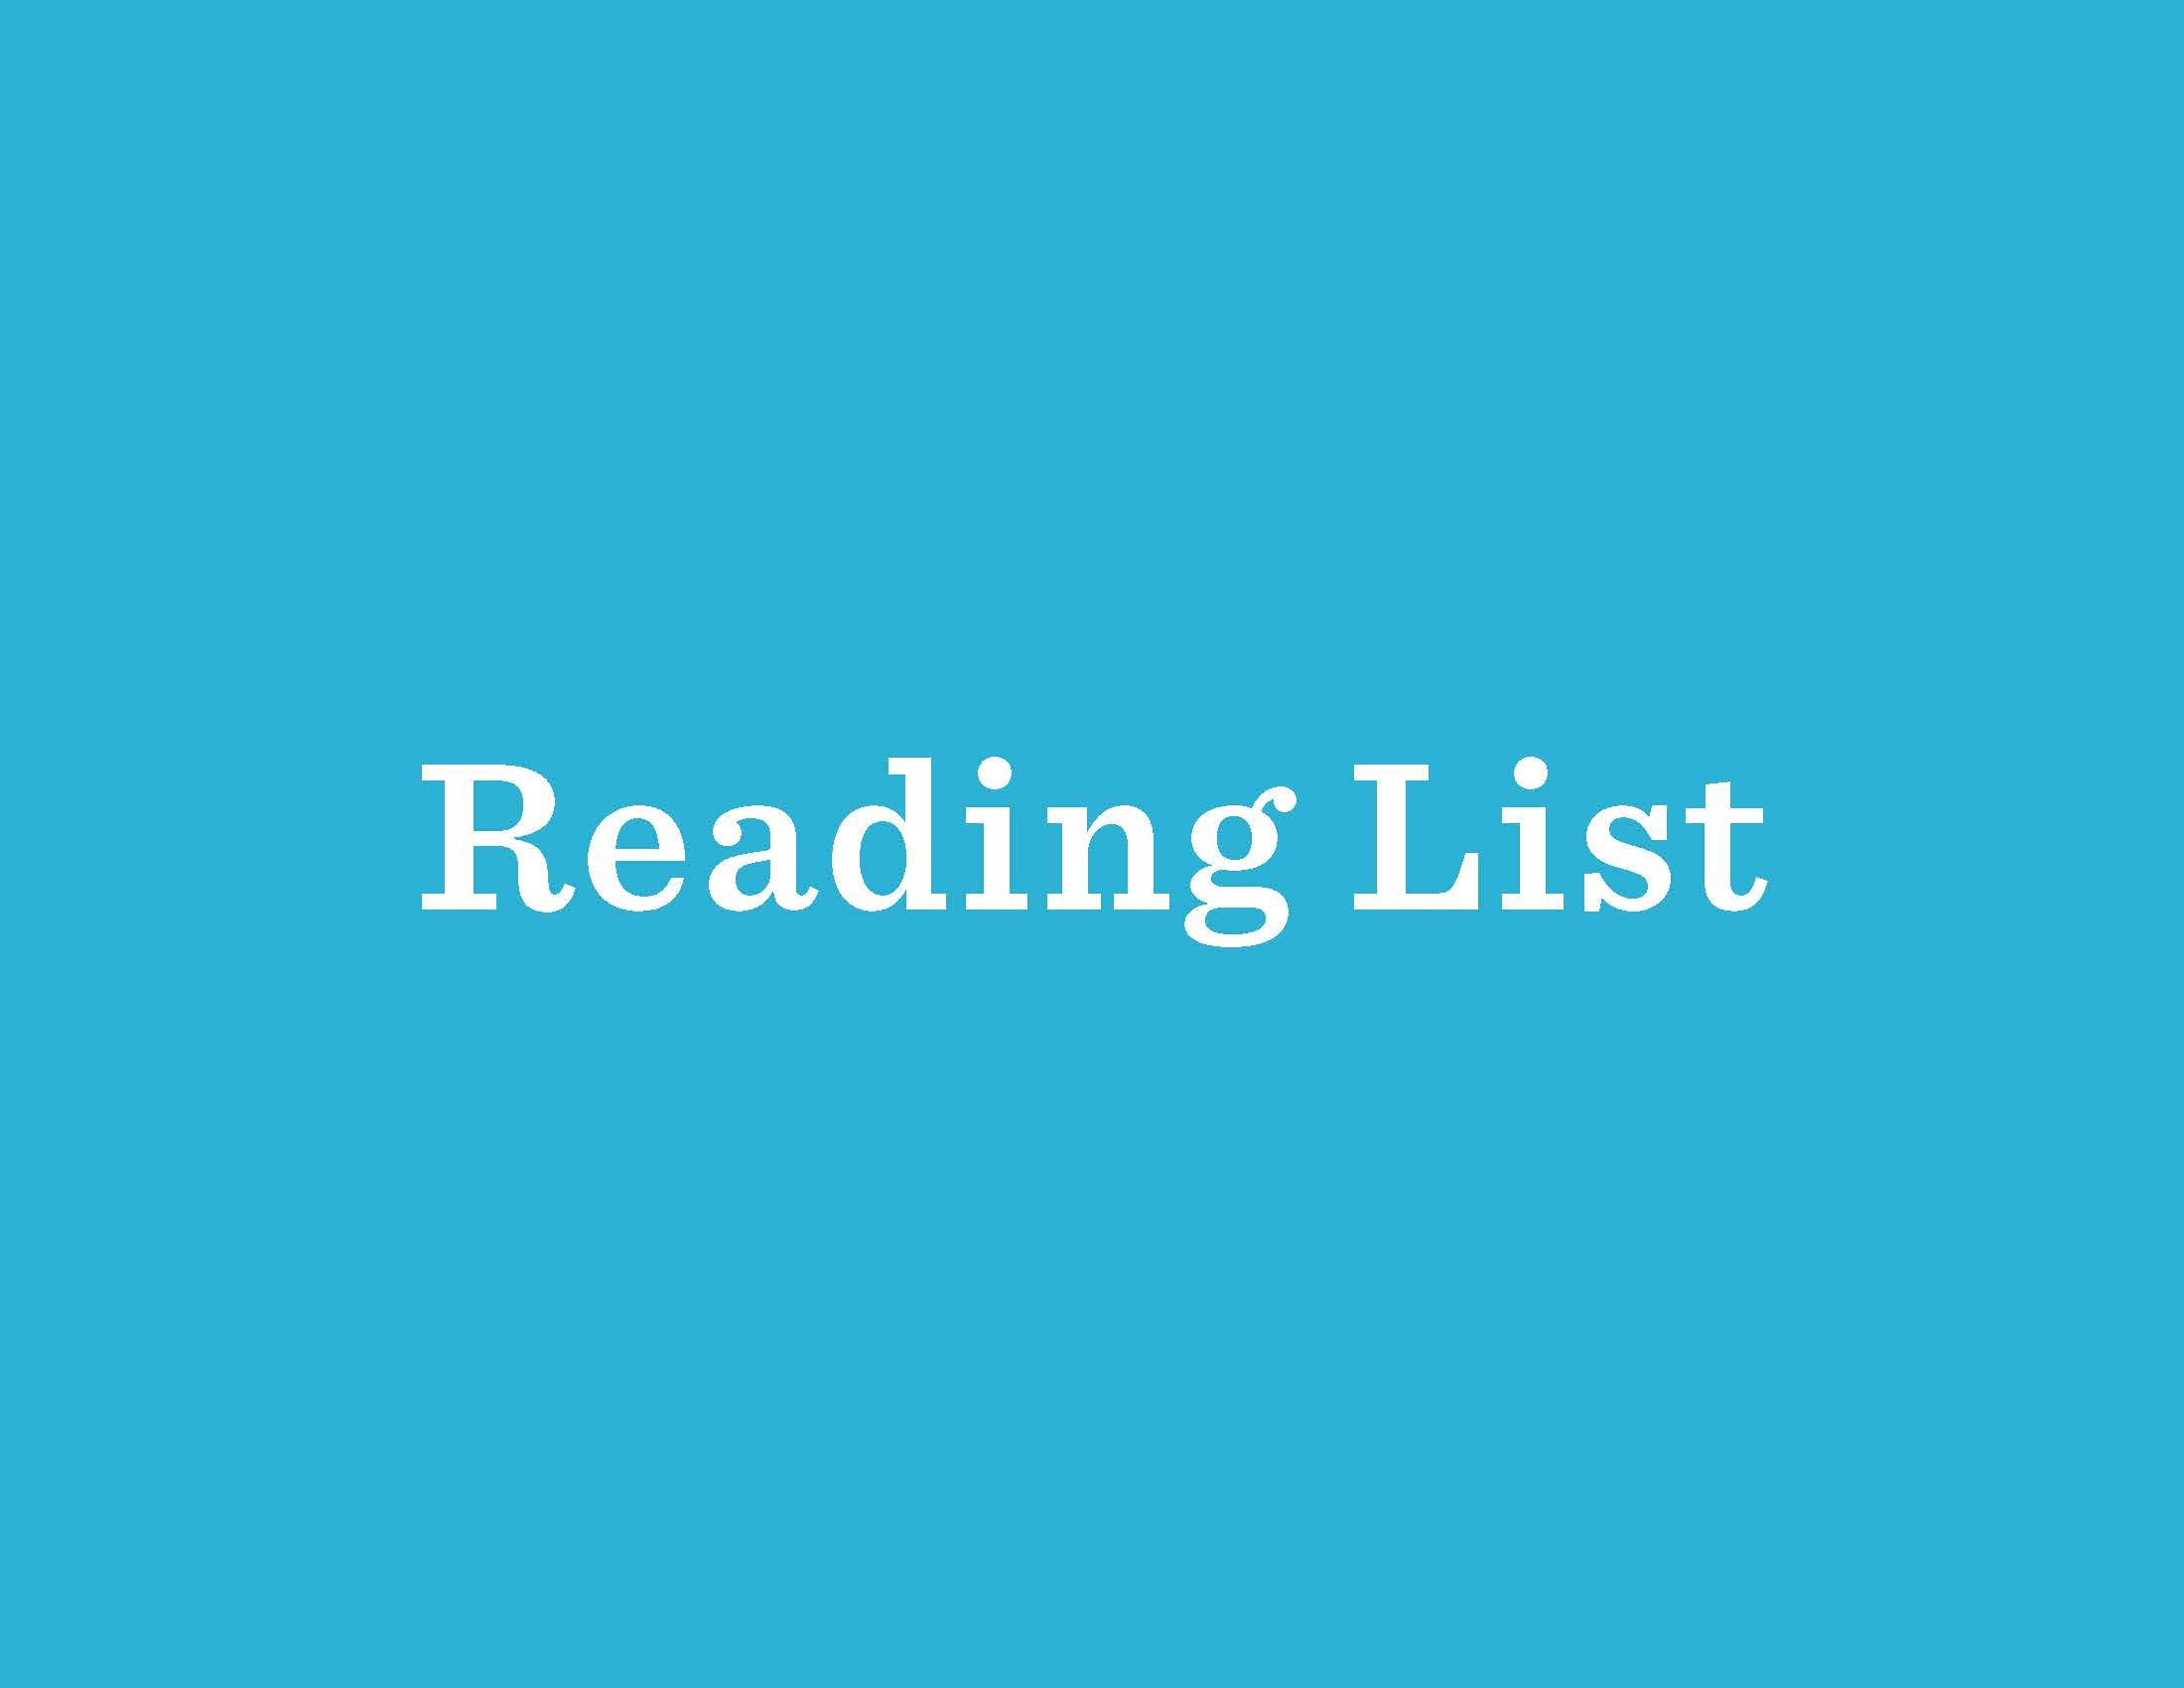 We curated a reading list  with sources to explore a variety of points of view around Design Thinking, Human-Centered Design, Service Design, and Innovation.